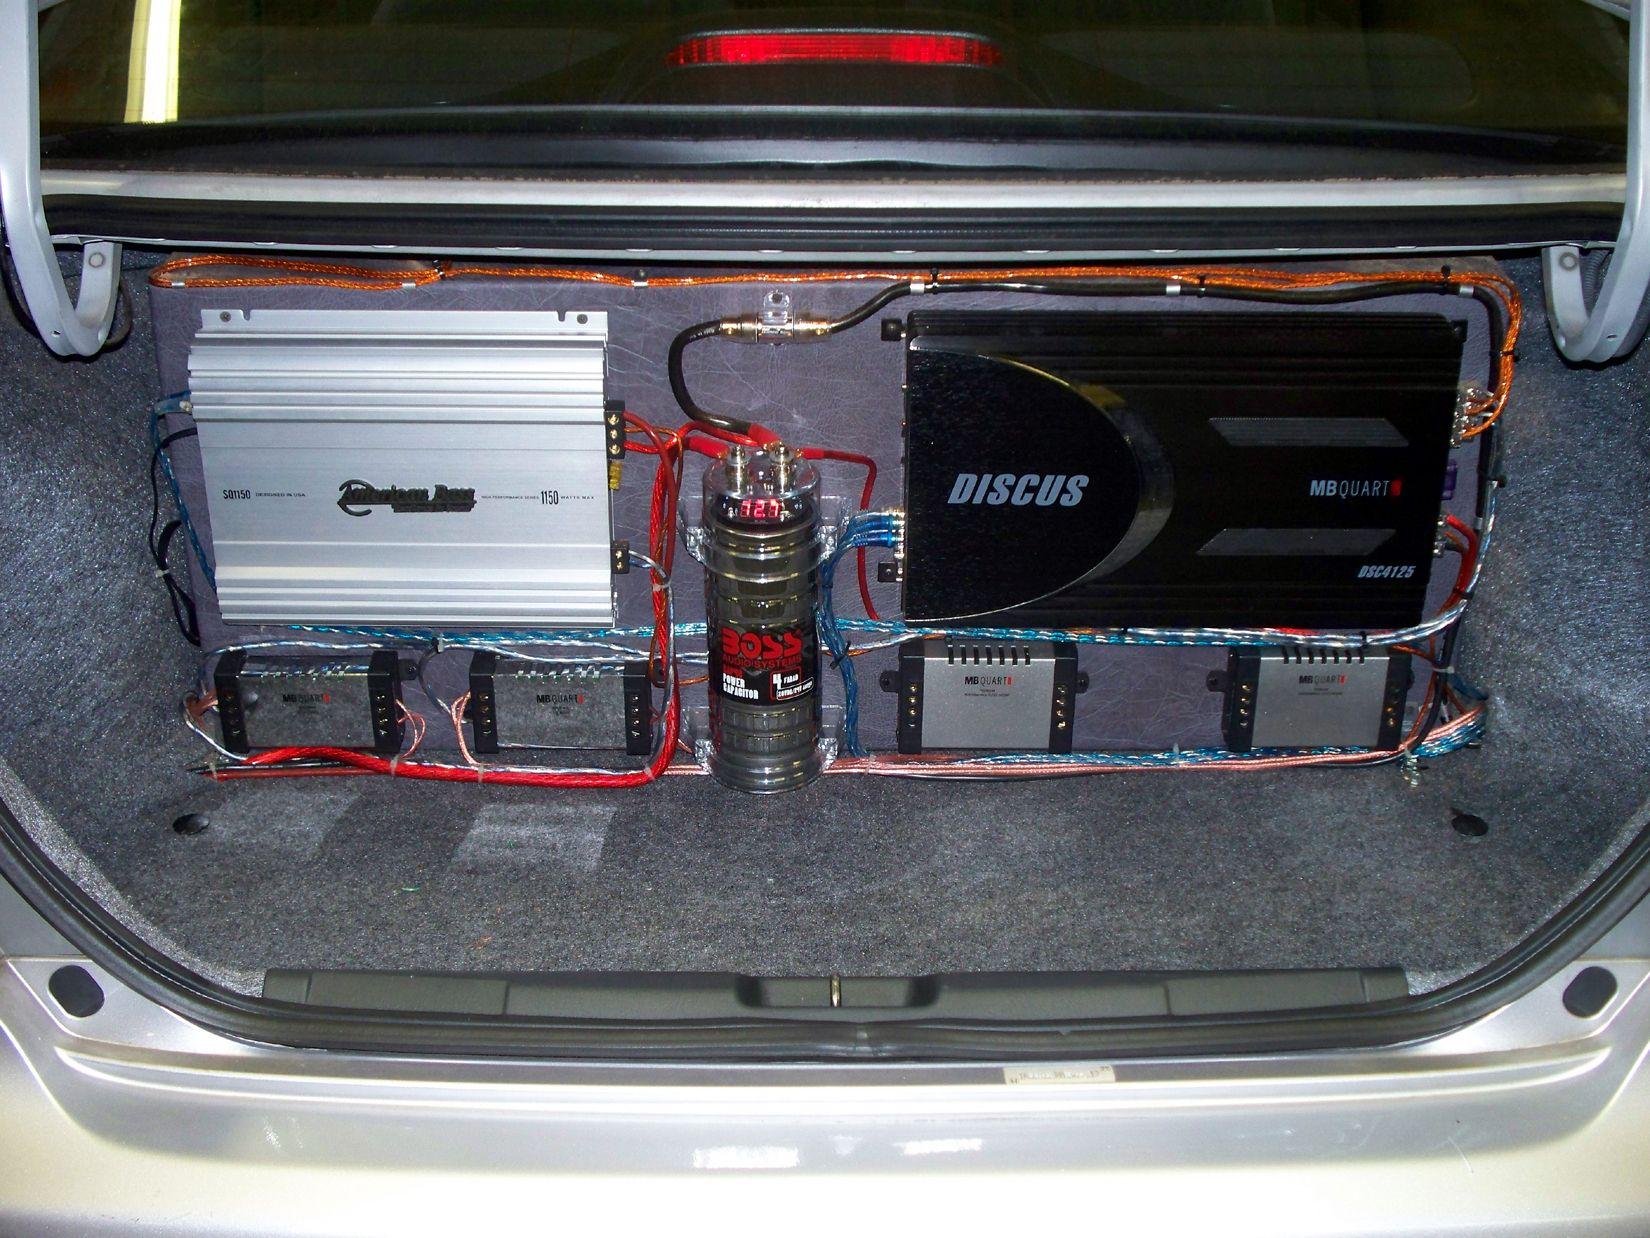 Take your car audio to the next level by adding a subwoofer and amplifier